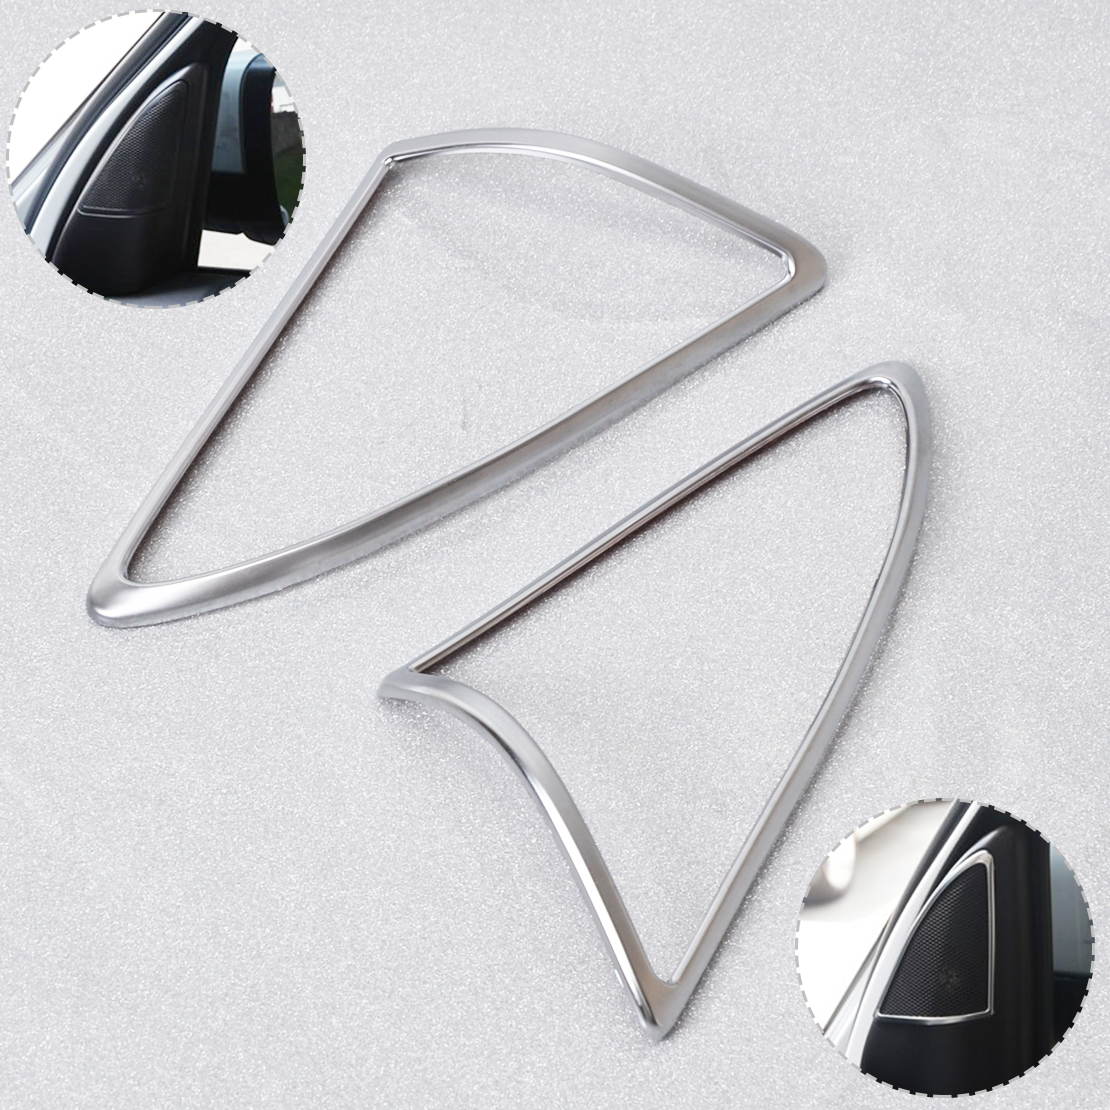 W210 E-CLASS TWO CHROME MIRROR COVERS FOR 2000-2002 MERCEDES BENZ FACELIFT